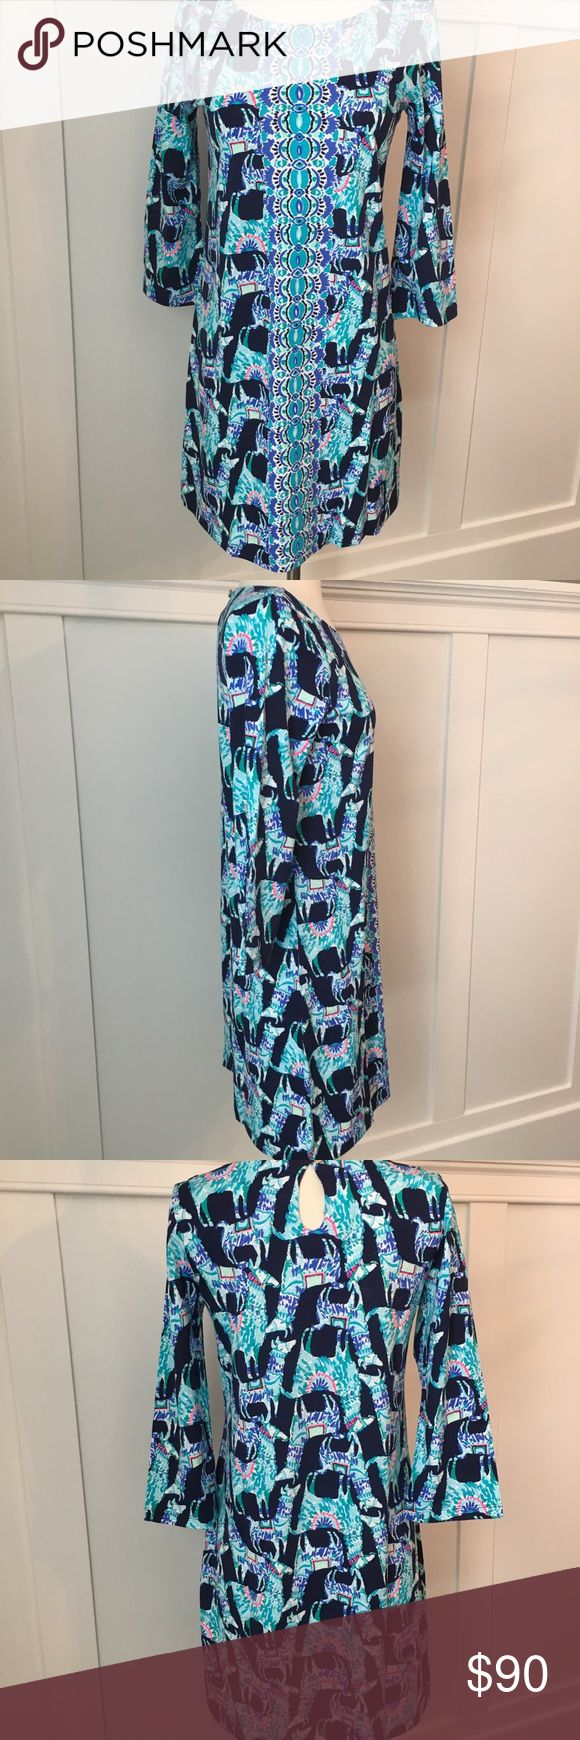 NWT Lilly Pulitzer Bright Navy Bay Dress New With Tags Lilly Pulitzer Bright Navy Bay Dress.  Size Small.  A casually stylish knit dress that can be worn with sandals, sneakers, or heels depending on the occasion. Three-quarter sleeve dress in a printed pima cotton jersey. Straight fit. Boat neckline. Back keyhole and button-and-loop closure at the nape. Straight hem. Unlined. 100% pima cotton. Machine wash, tumble dry. Made in Peru.  Length: 36 in Lilly Pulitzer Dresses